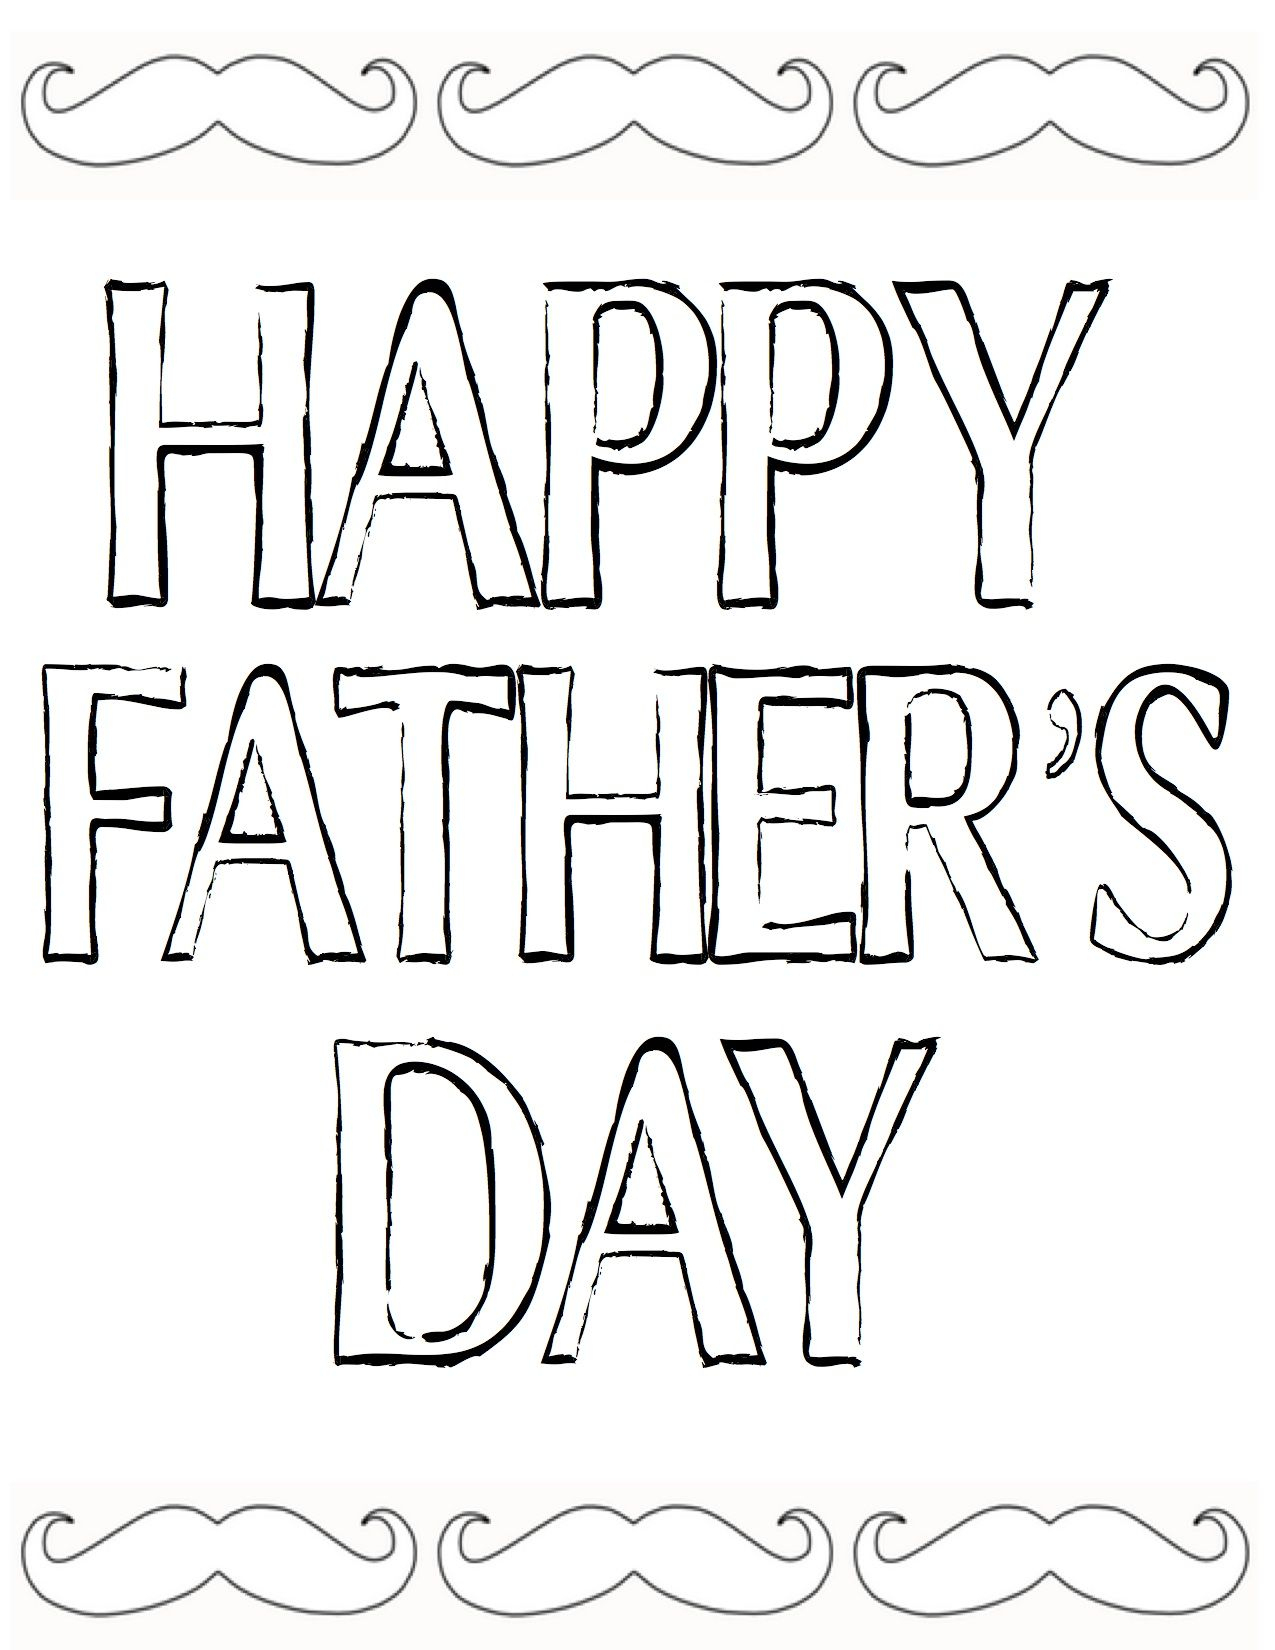 Free Fathers Day Printables And More | Diy Ideas | Pinterest - Free Happy Fathers Day Cards Printable